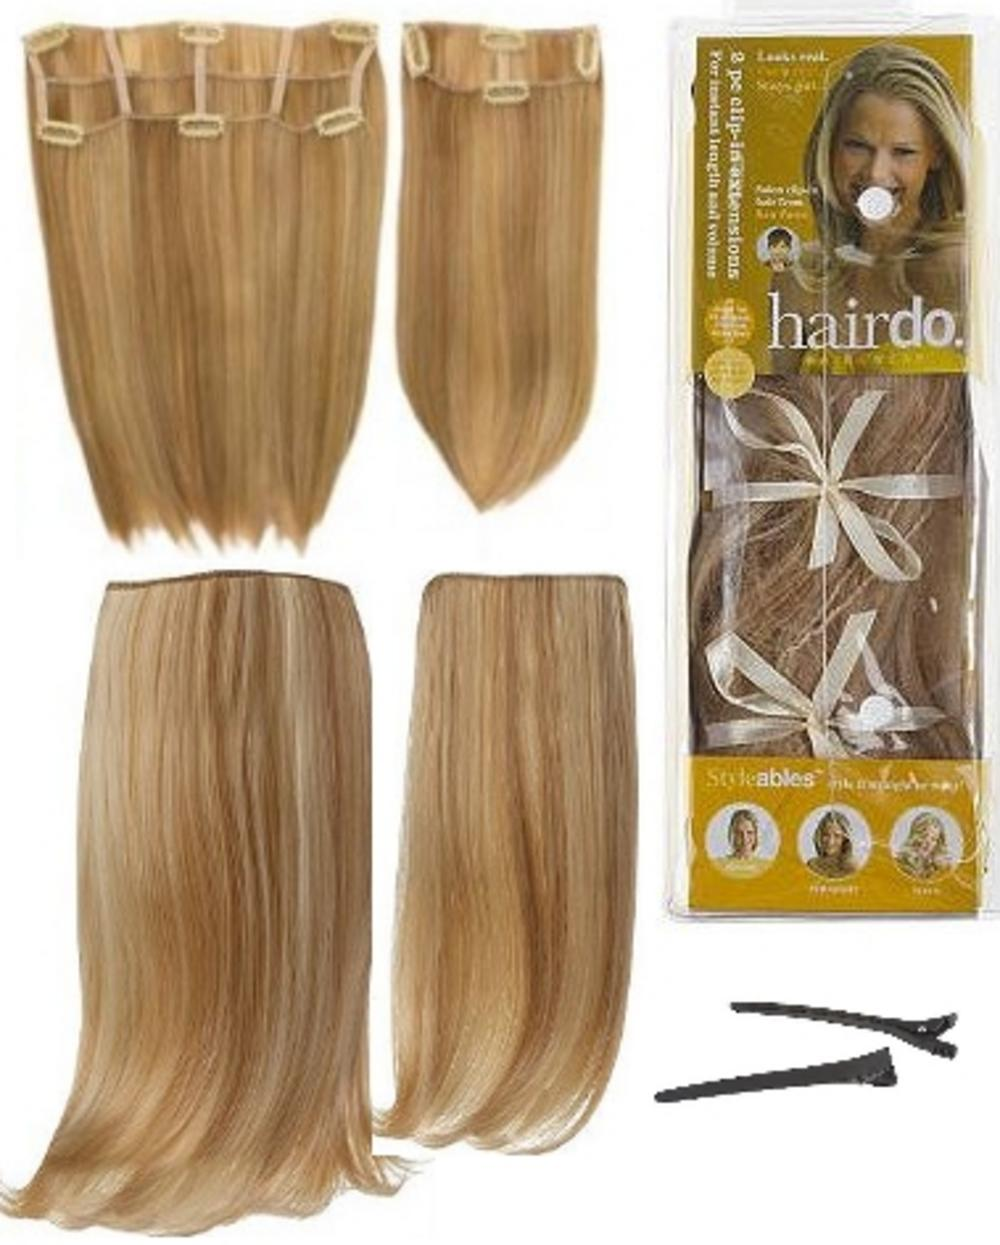 Hair Extensions Clip In 2 Piece Ken Paves Hairdo Sandy Blonde